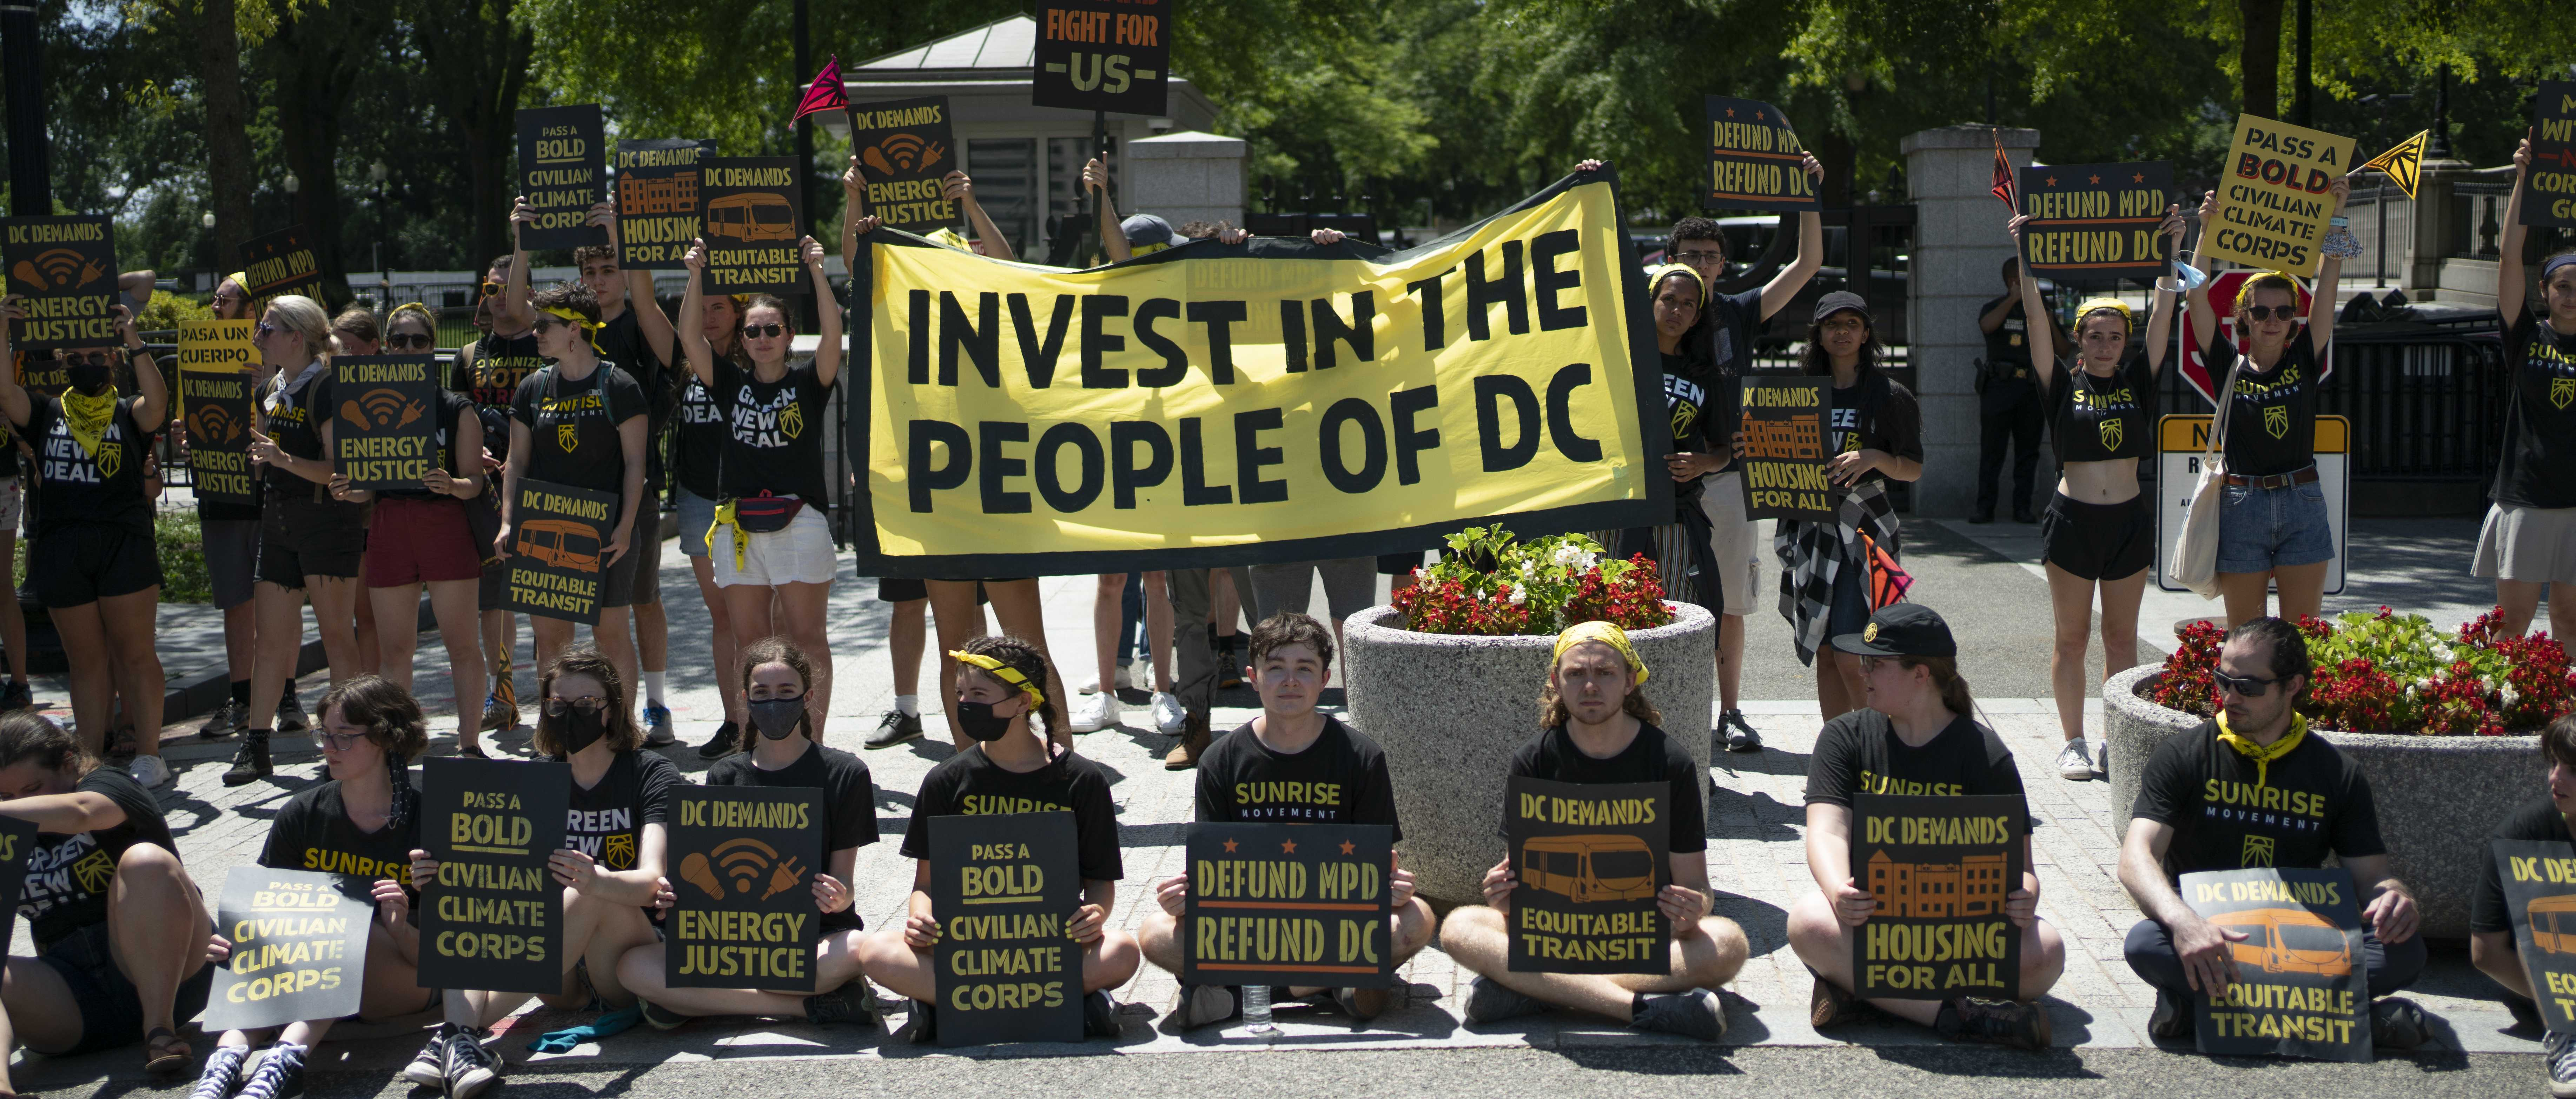 """Sunrise organizers hold signs reading """"Invest in the People of DC"""" and """"Defund MPD Refund DC"""""""